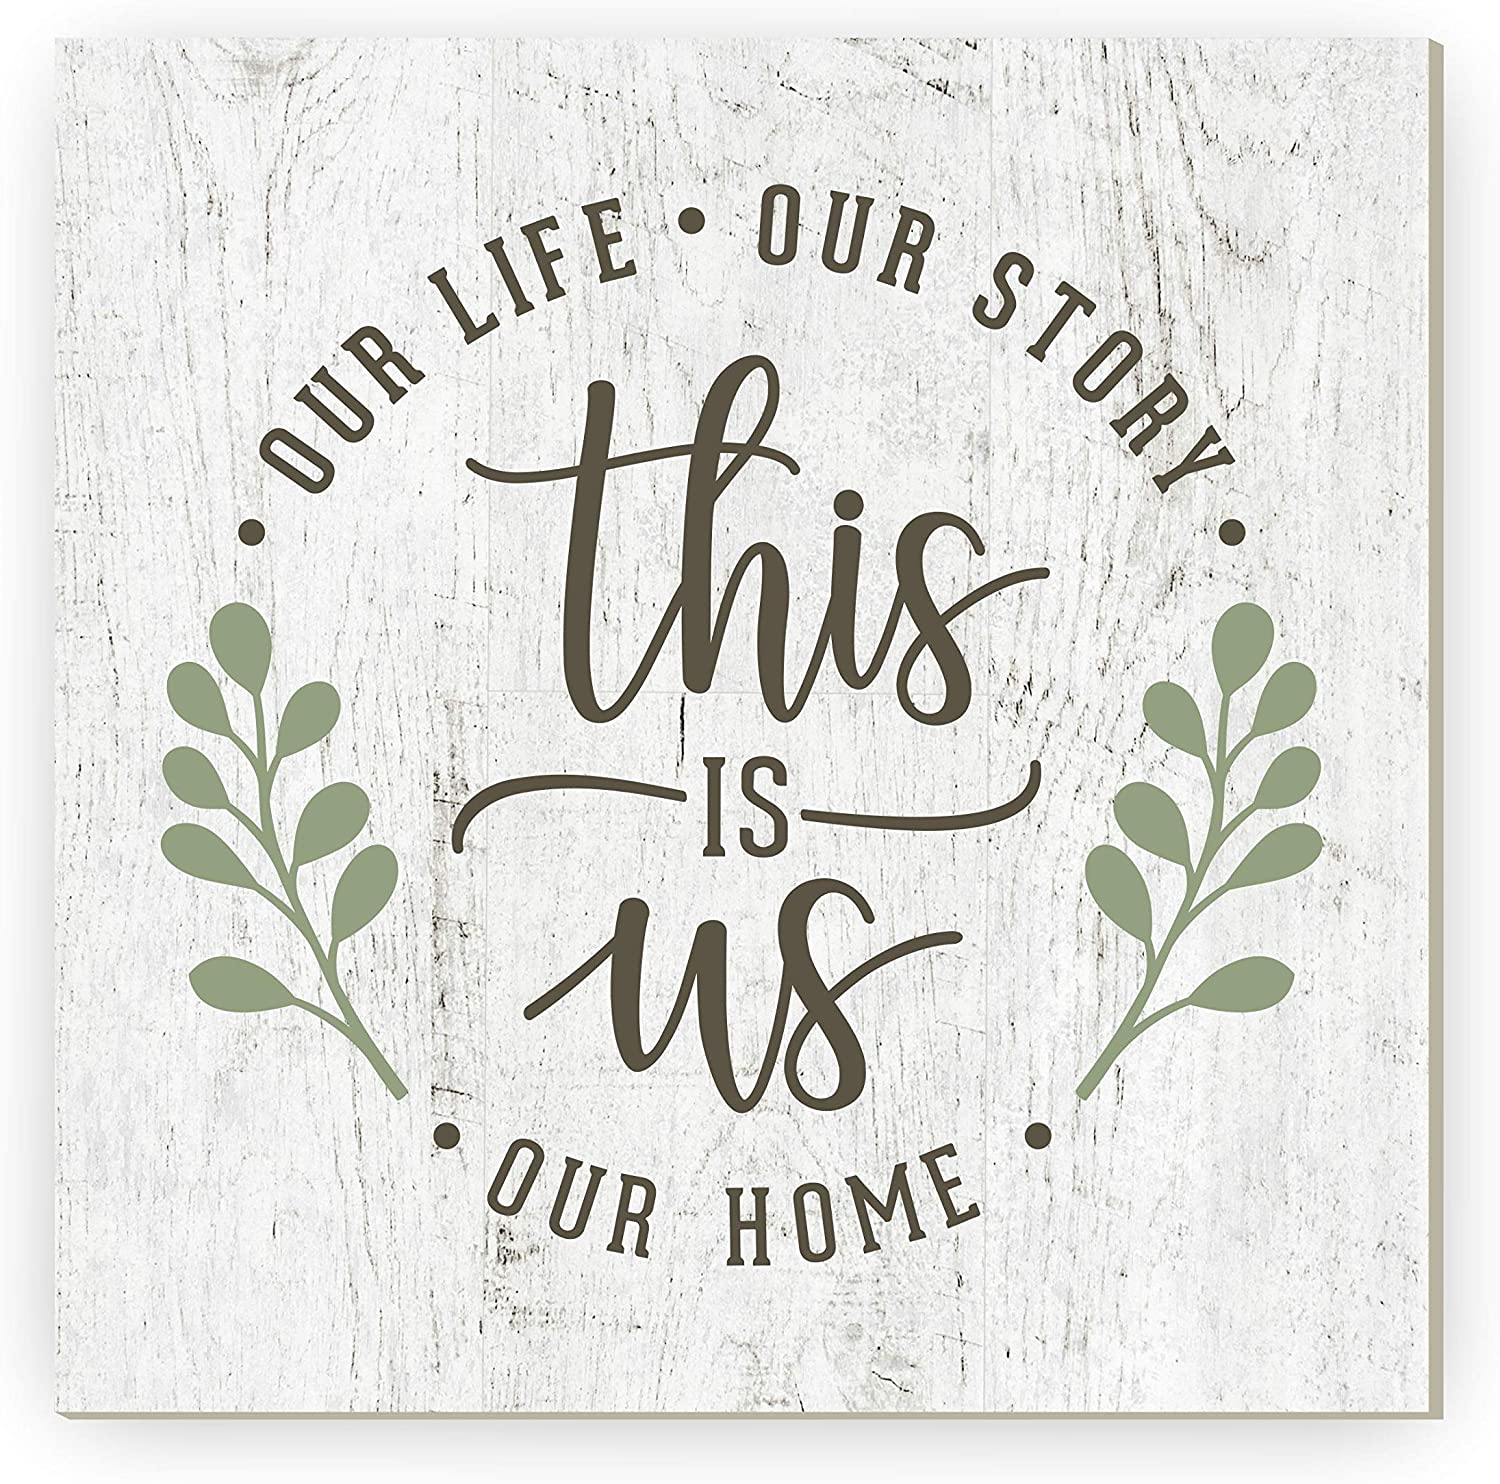 This is Us Our Life Our Story Our Home Rustic Framed Wood Farmhouse Wall Sign 12x12 (Unframed)